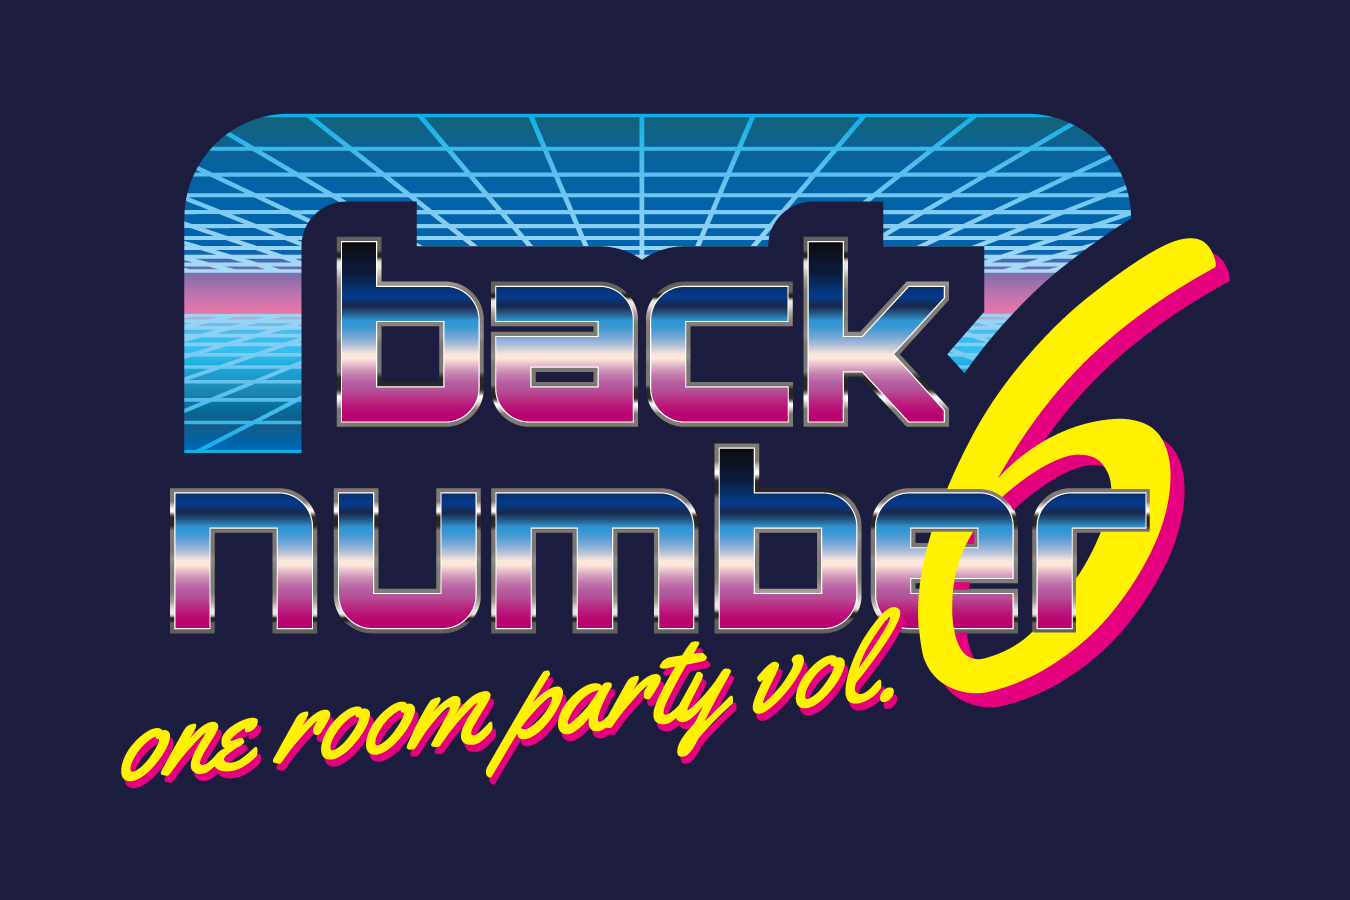 back number fan club tour『one room party vol.6』開催決定!